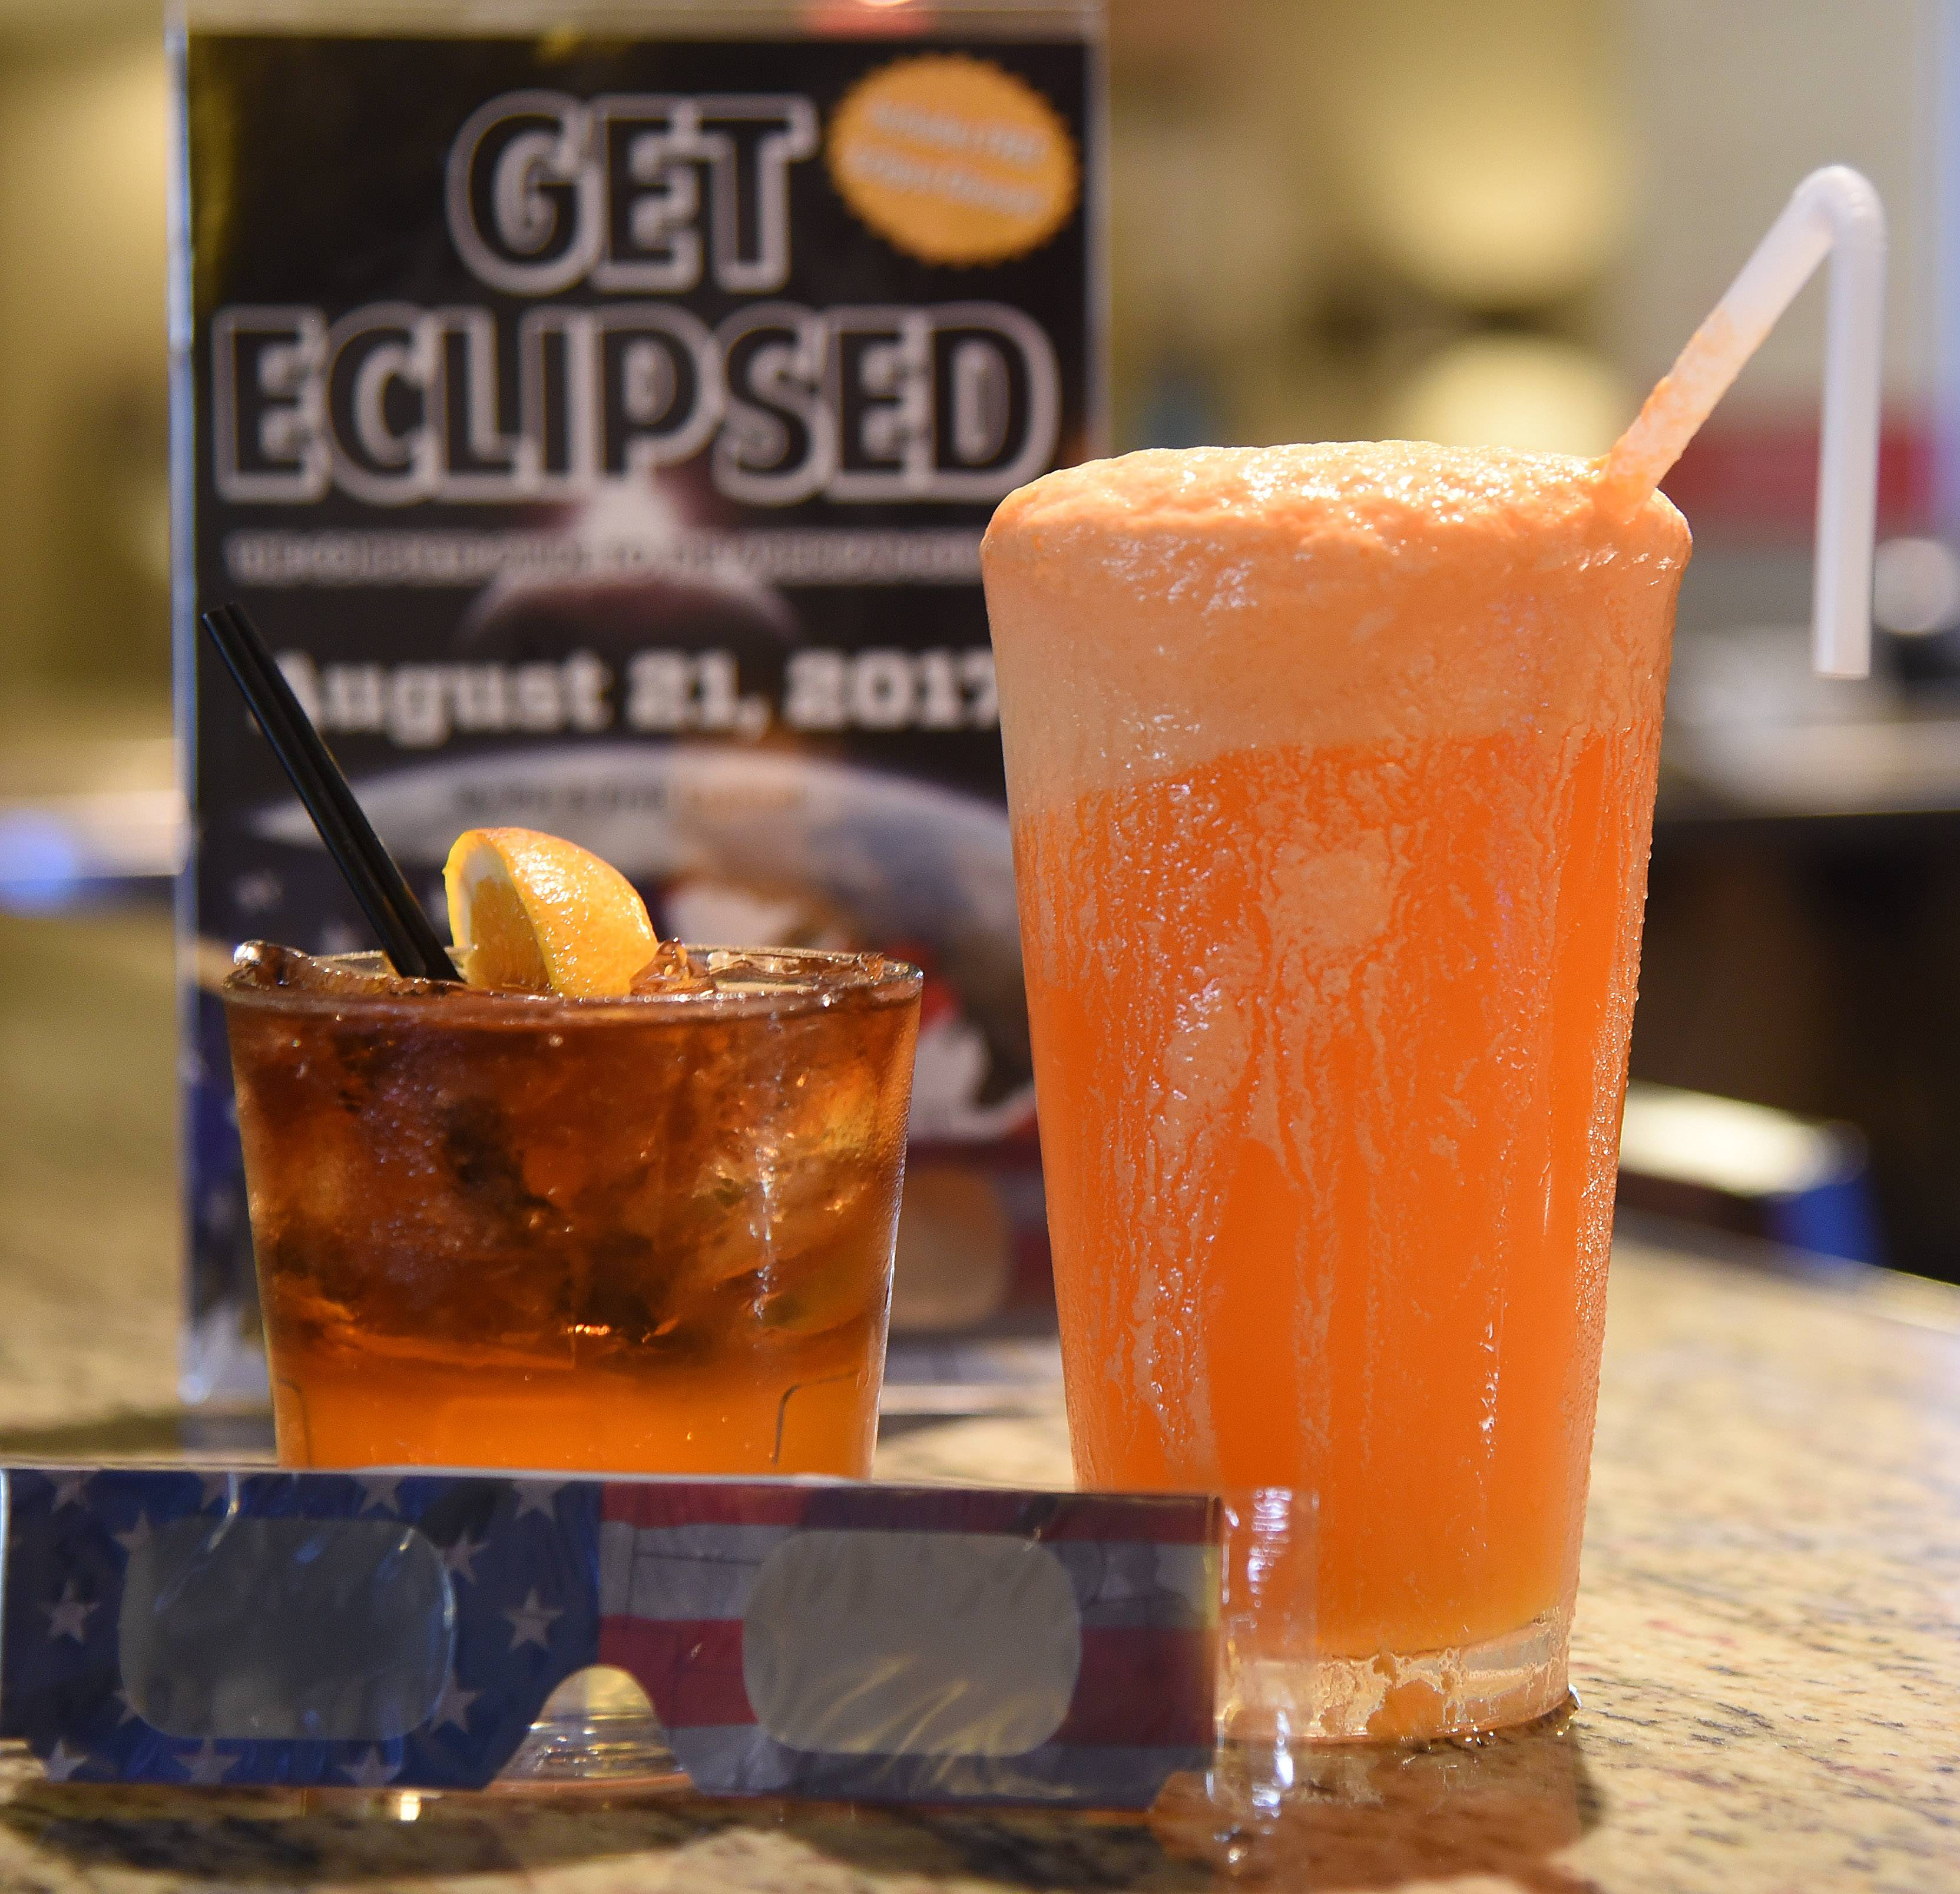 Pheasant Run Resort in St. Charles has created a pair of drinks inspired by the eclipse. Adults can sip a cocktail made with dark rum, left, while kids can celebrate with a creation featuring orange soda and ice cream.